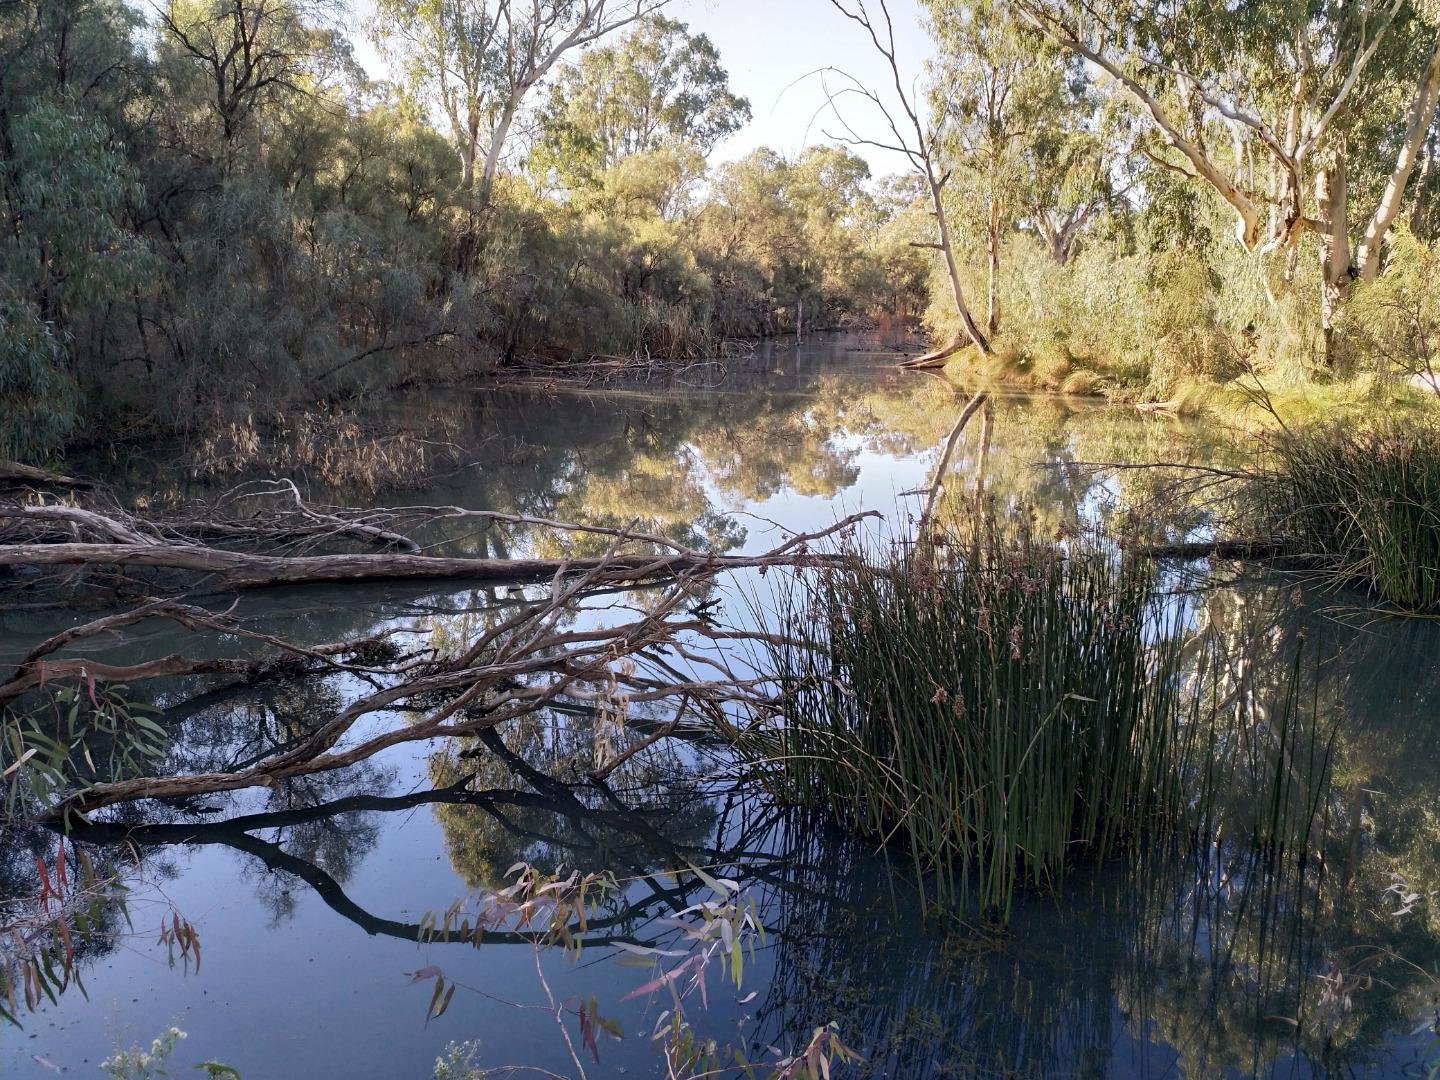 Sandilong creek, Mildura